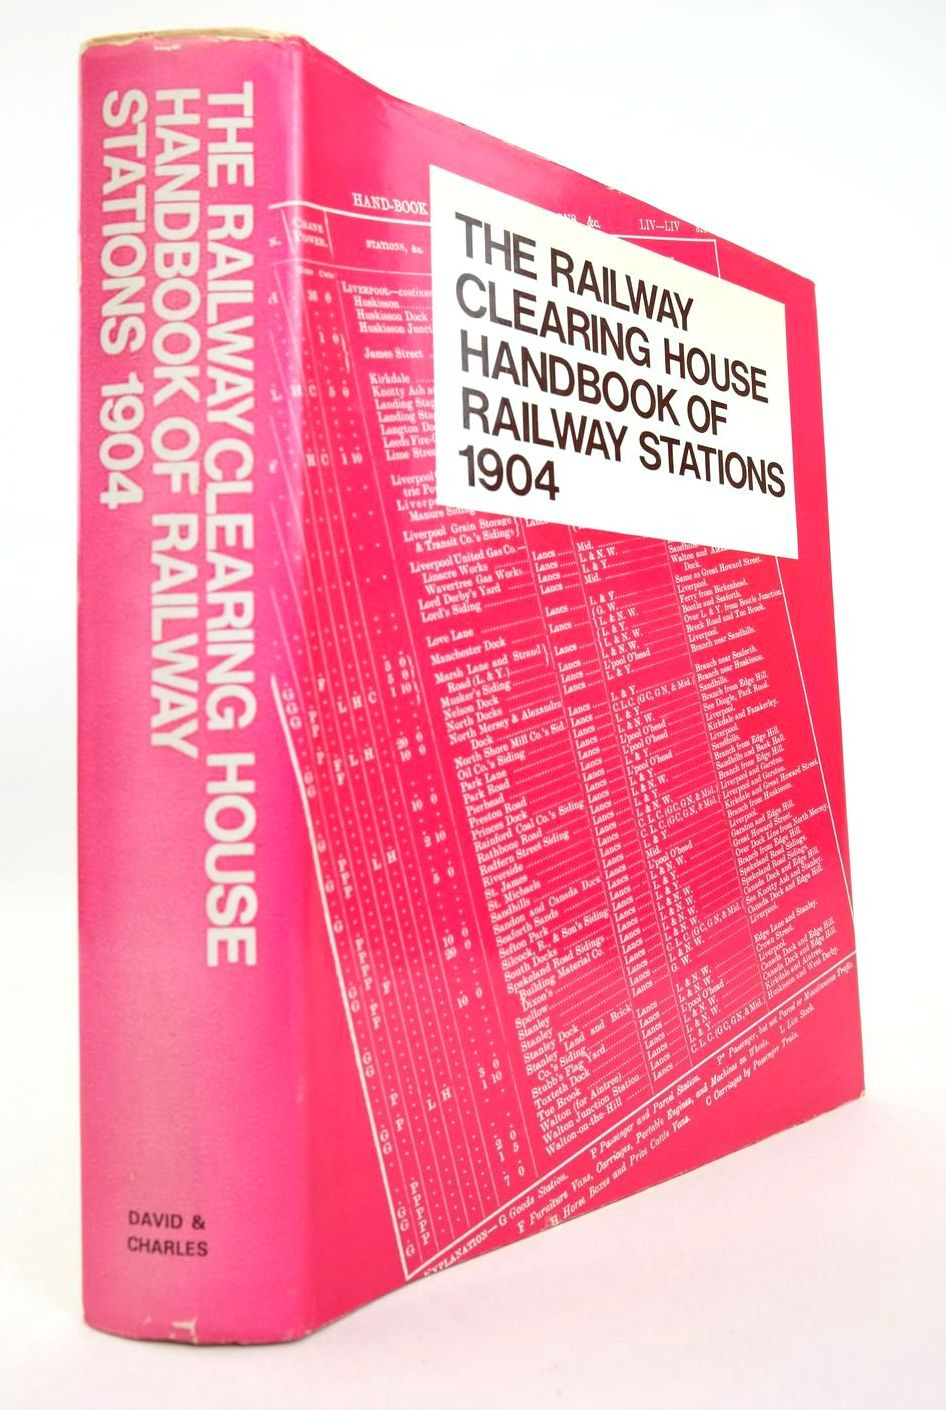 Photo of THE RAILWAY CLEARING HOUSE HANDBOOK OF RAILWAY STATIONS 1904 written by Clinker, C.R. published by David & Charles (STOCK CODE: 2132814)  for sale by Stella & Rose's Books